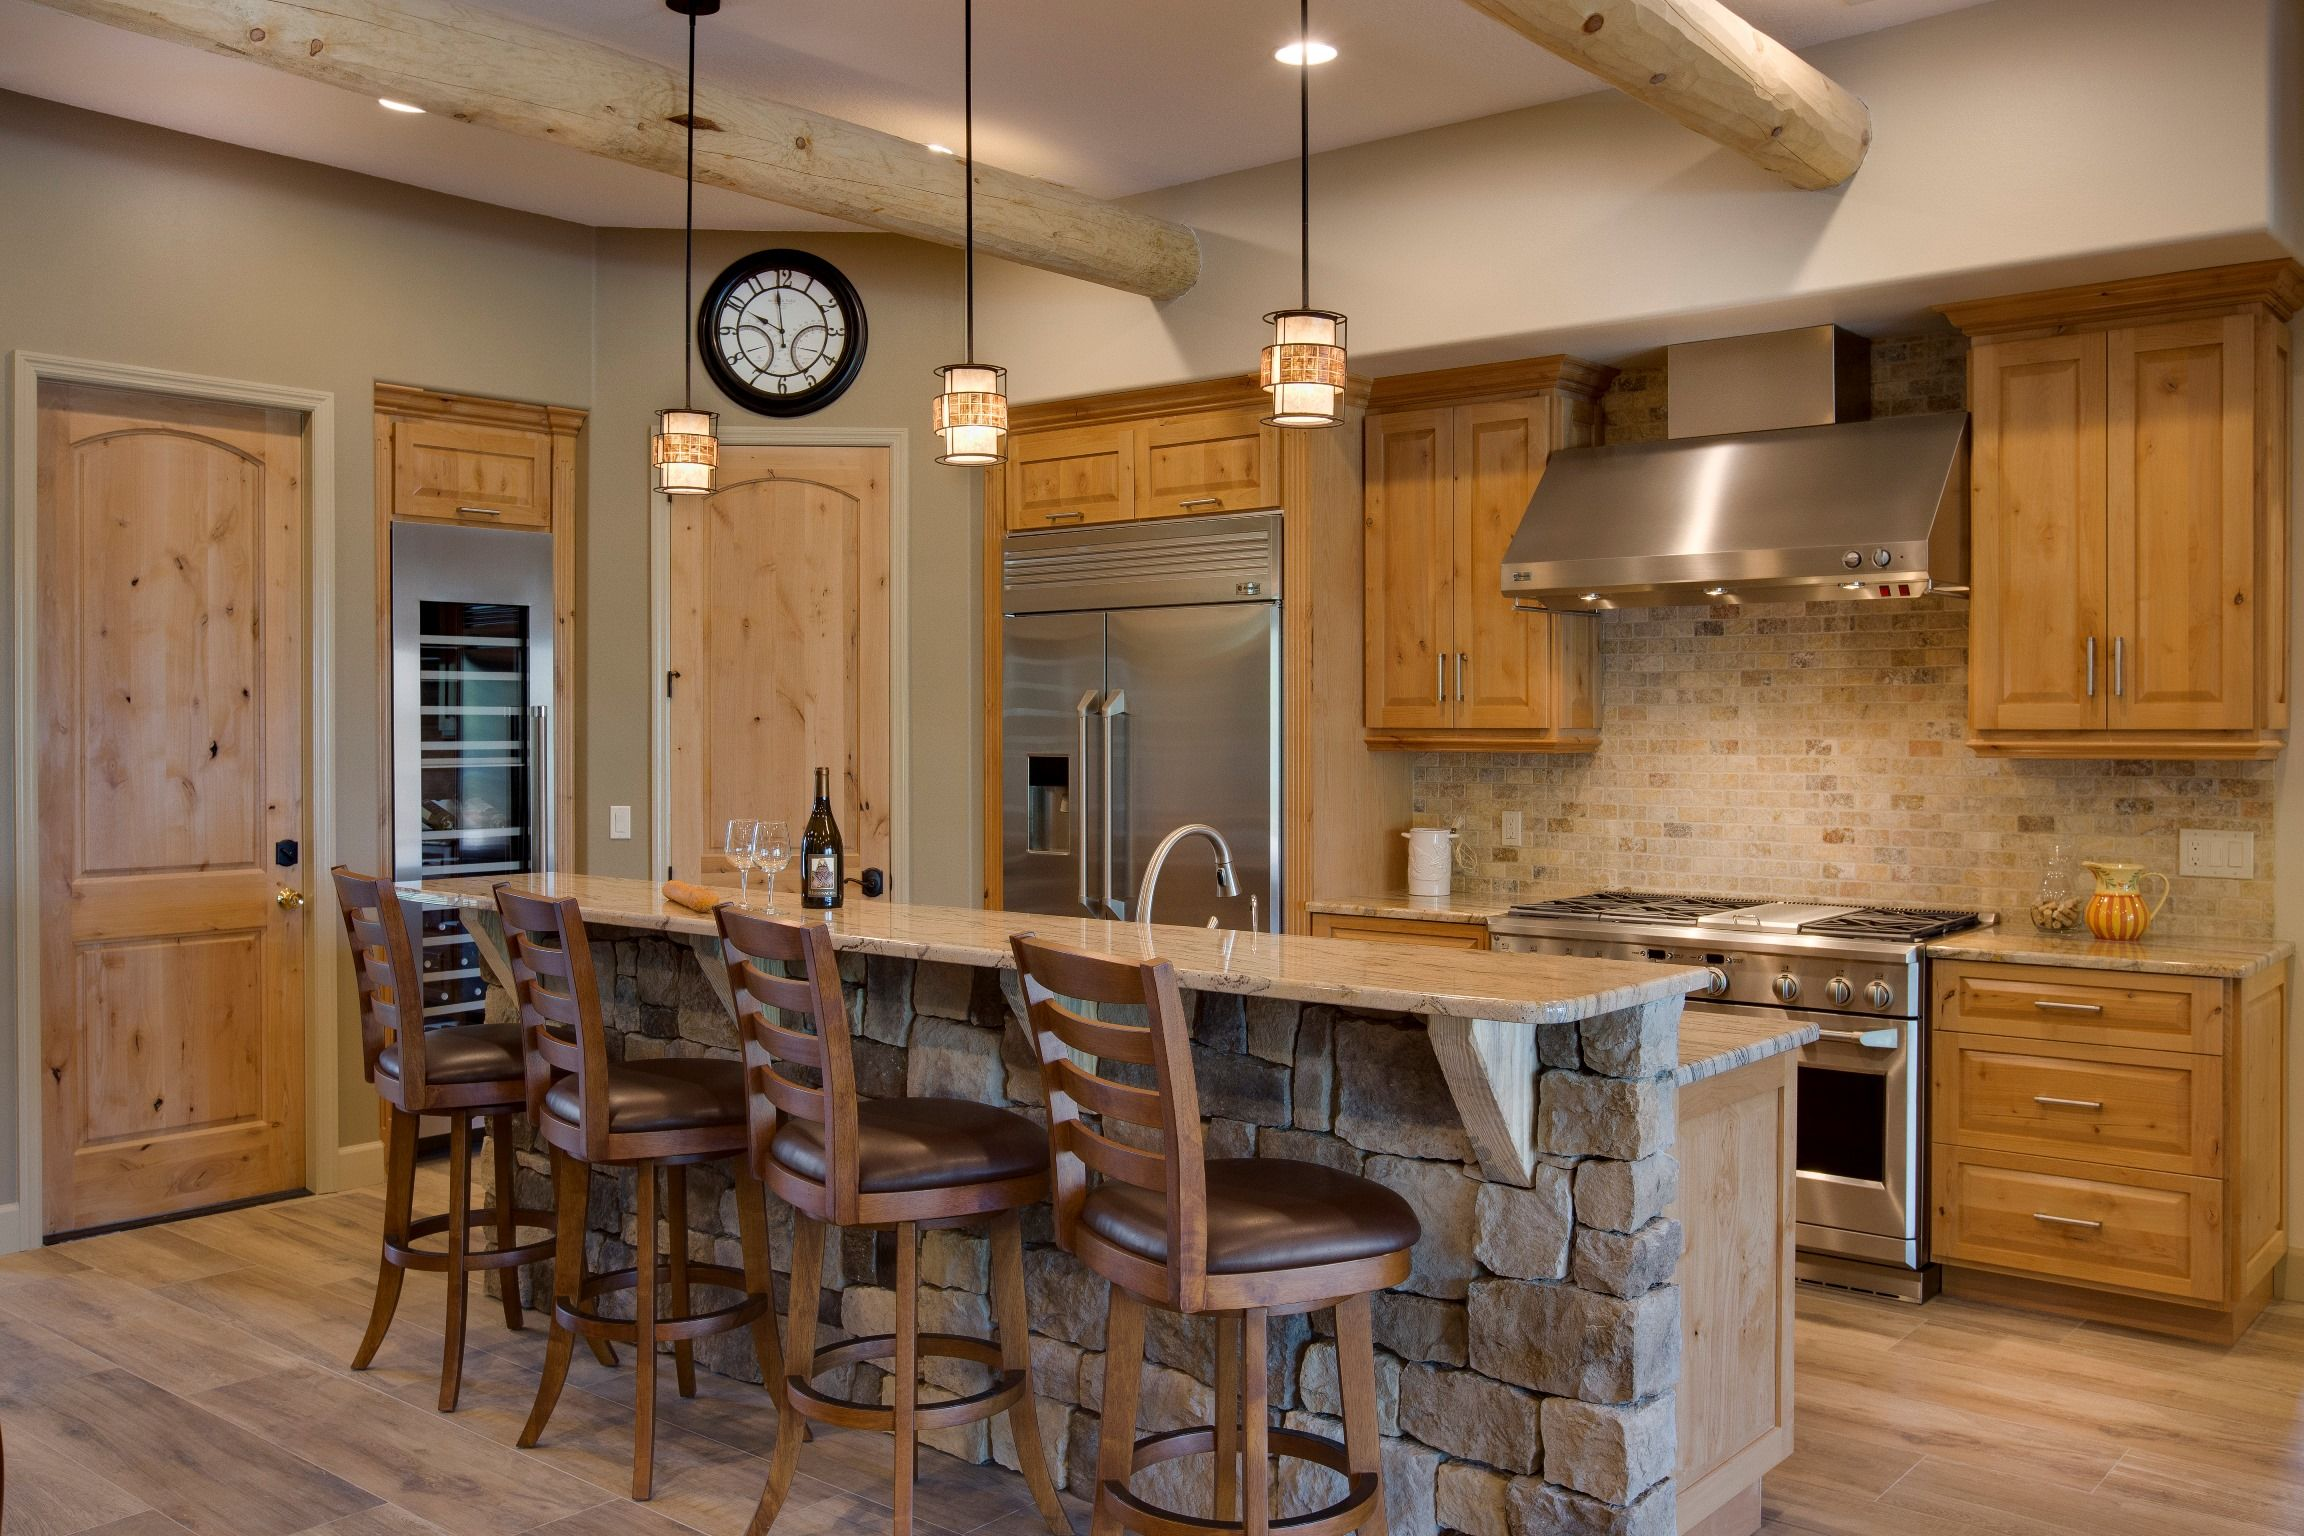 Jonathan McGrath Construction - The owners of this home ...